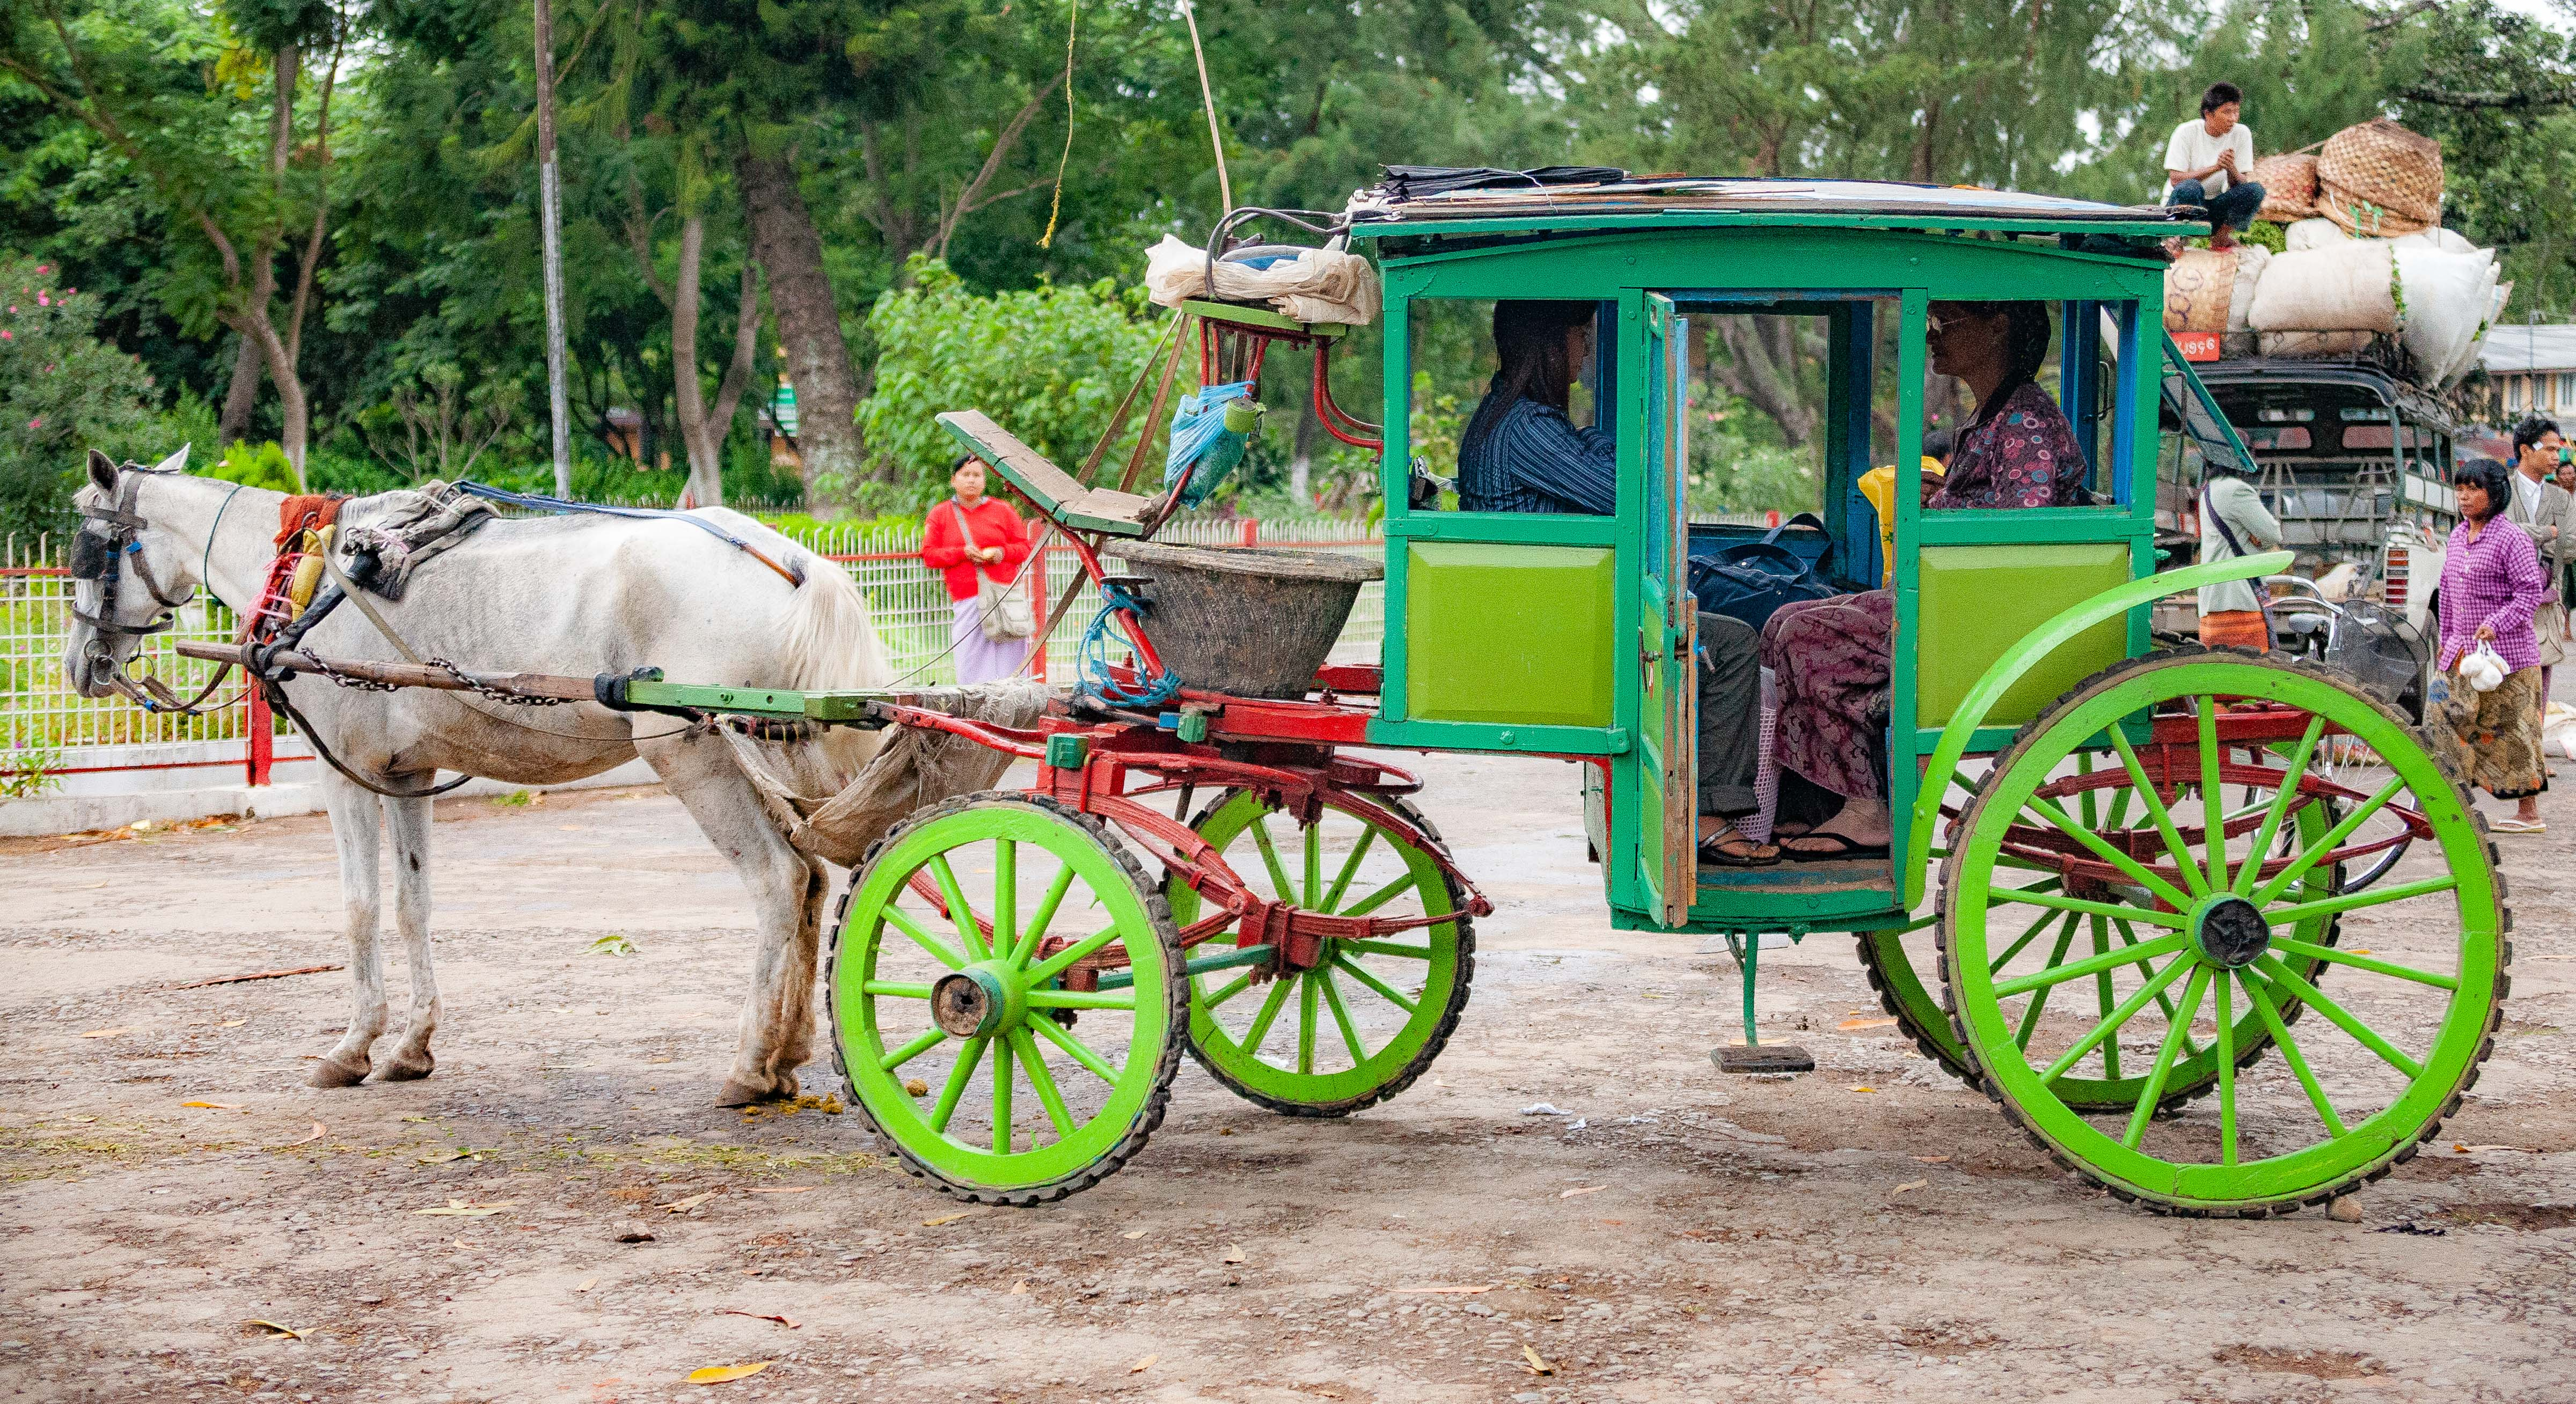 Myanmar, Shan Prov, Green Horse Carriage, 2009, IMG 4717